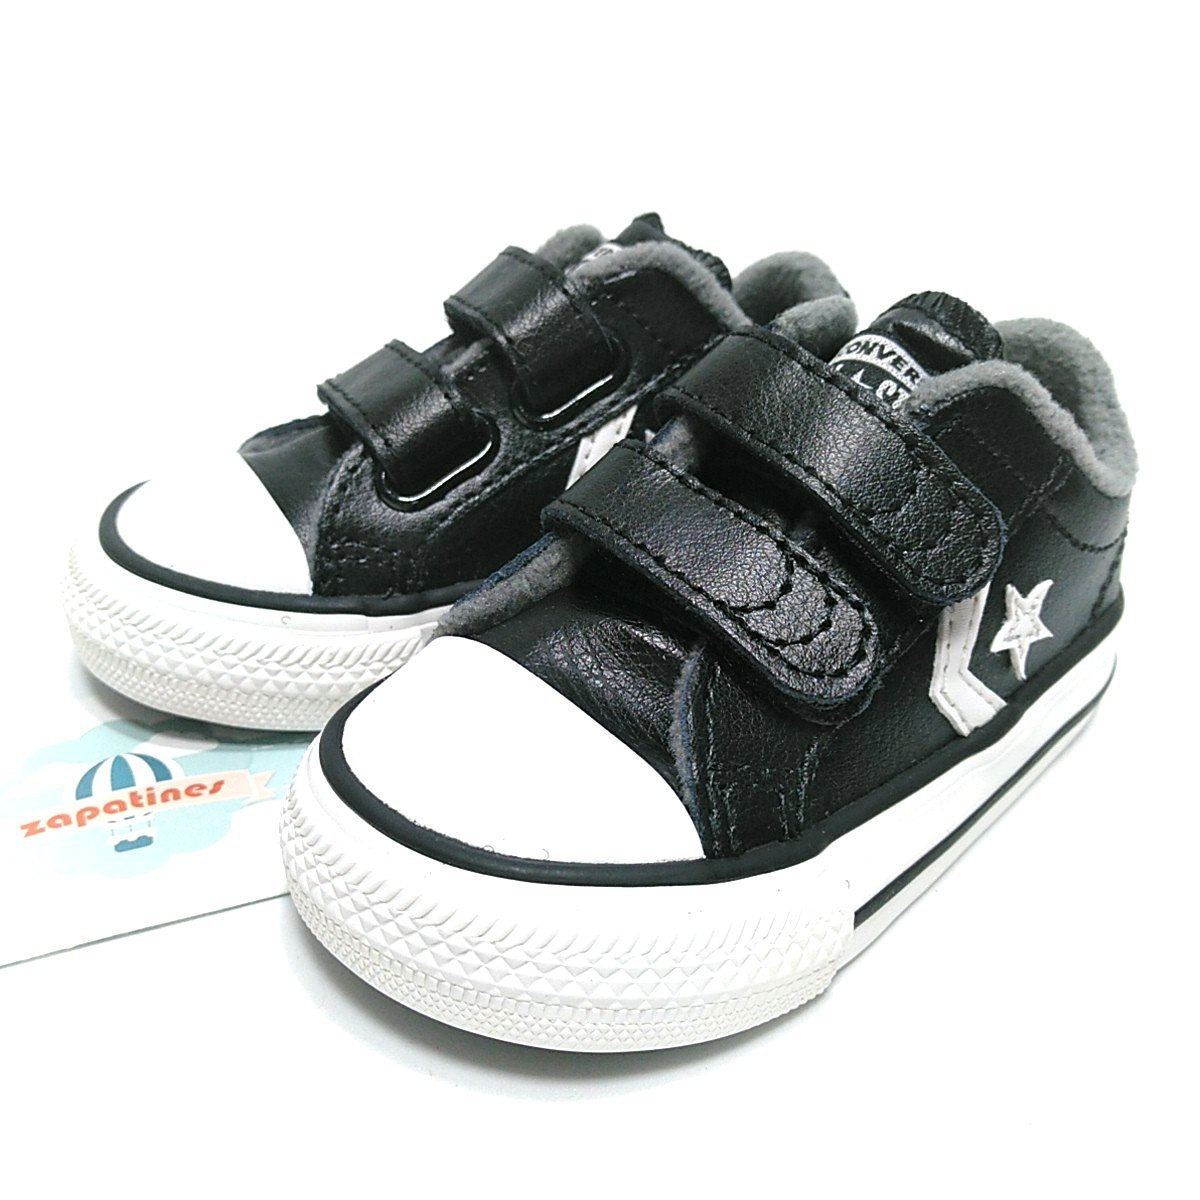 2converse niñas all star negras